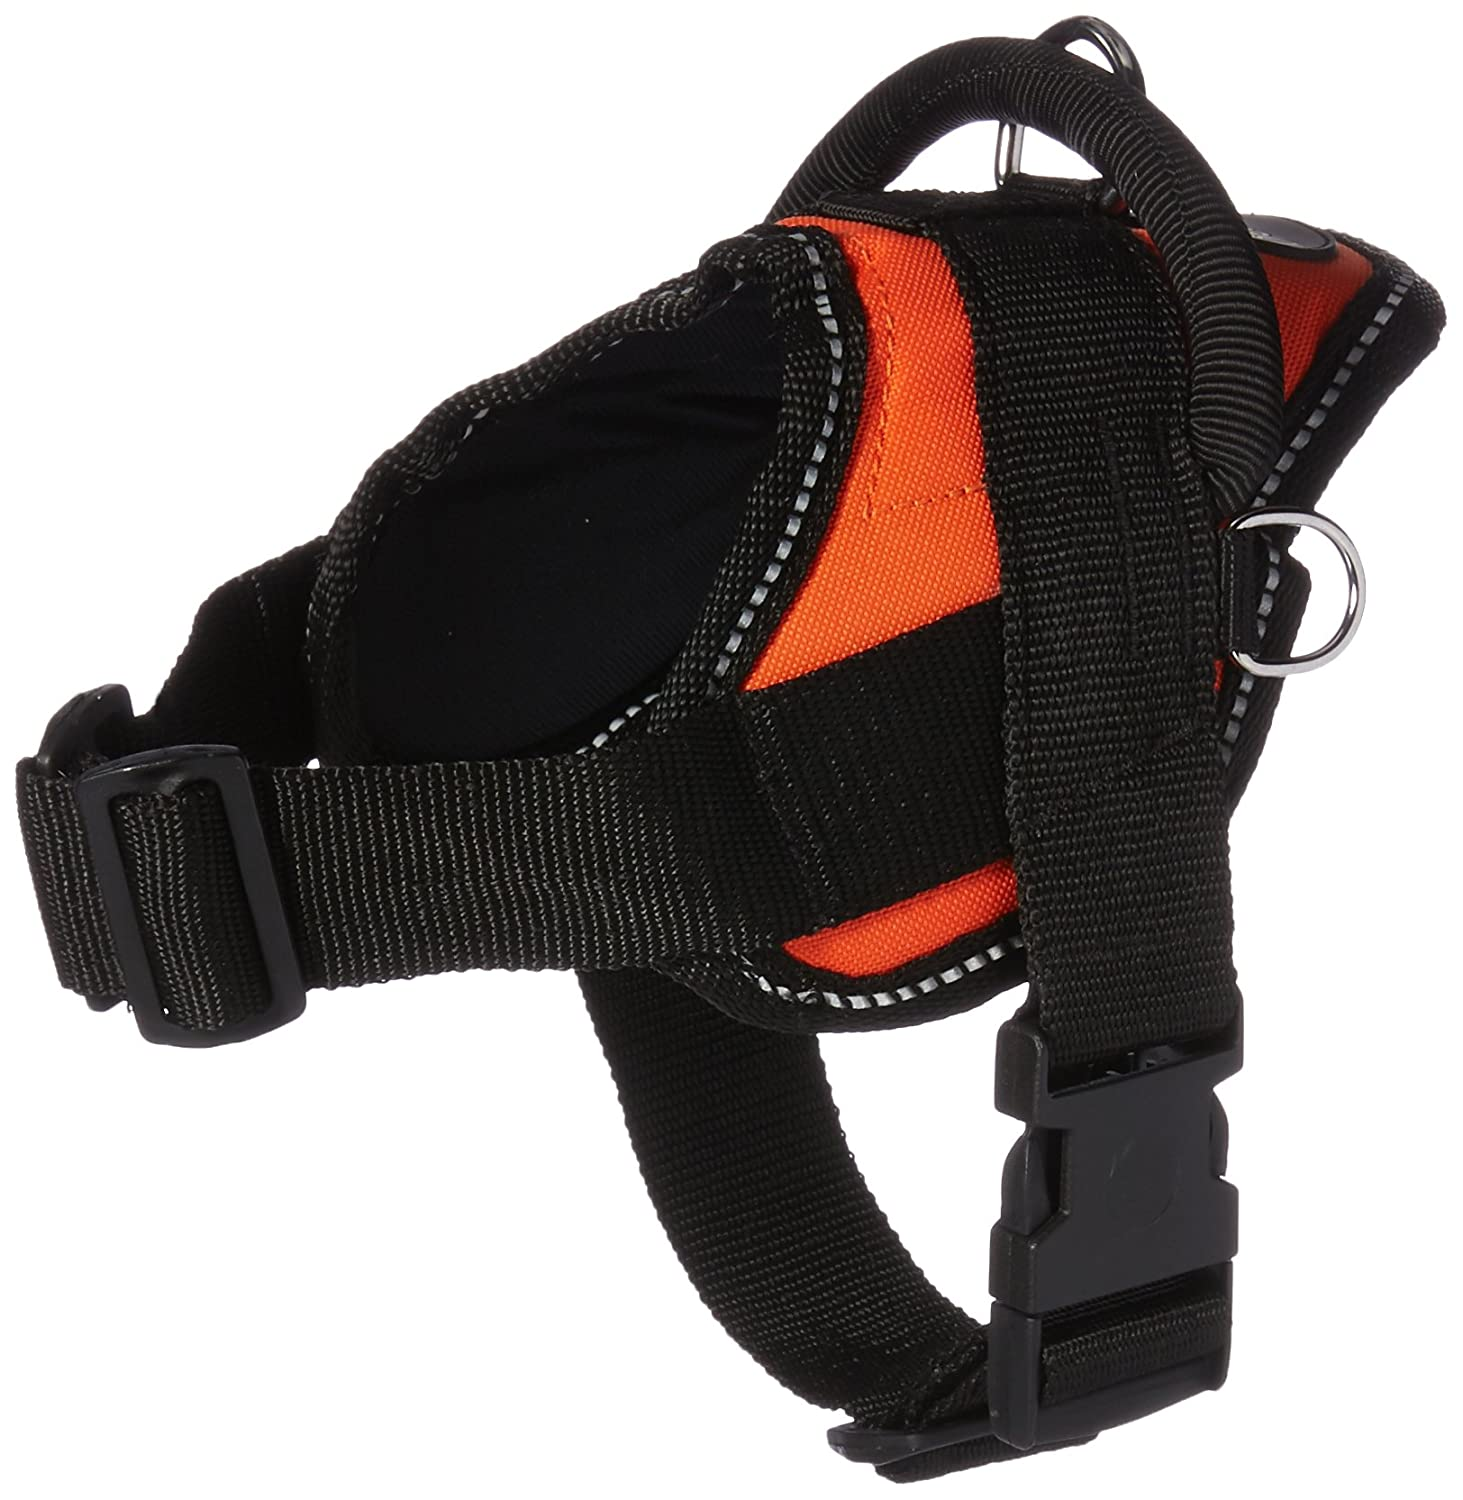 Dean & Tyler XX-Small orange Harness with Reflective Trim and Padded Puppy Leash Black Padding